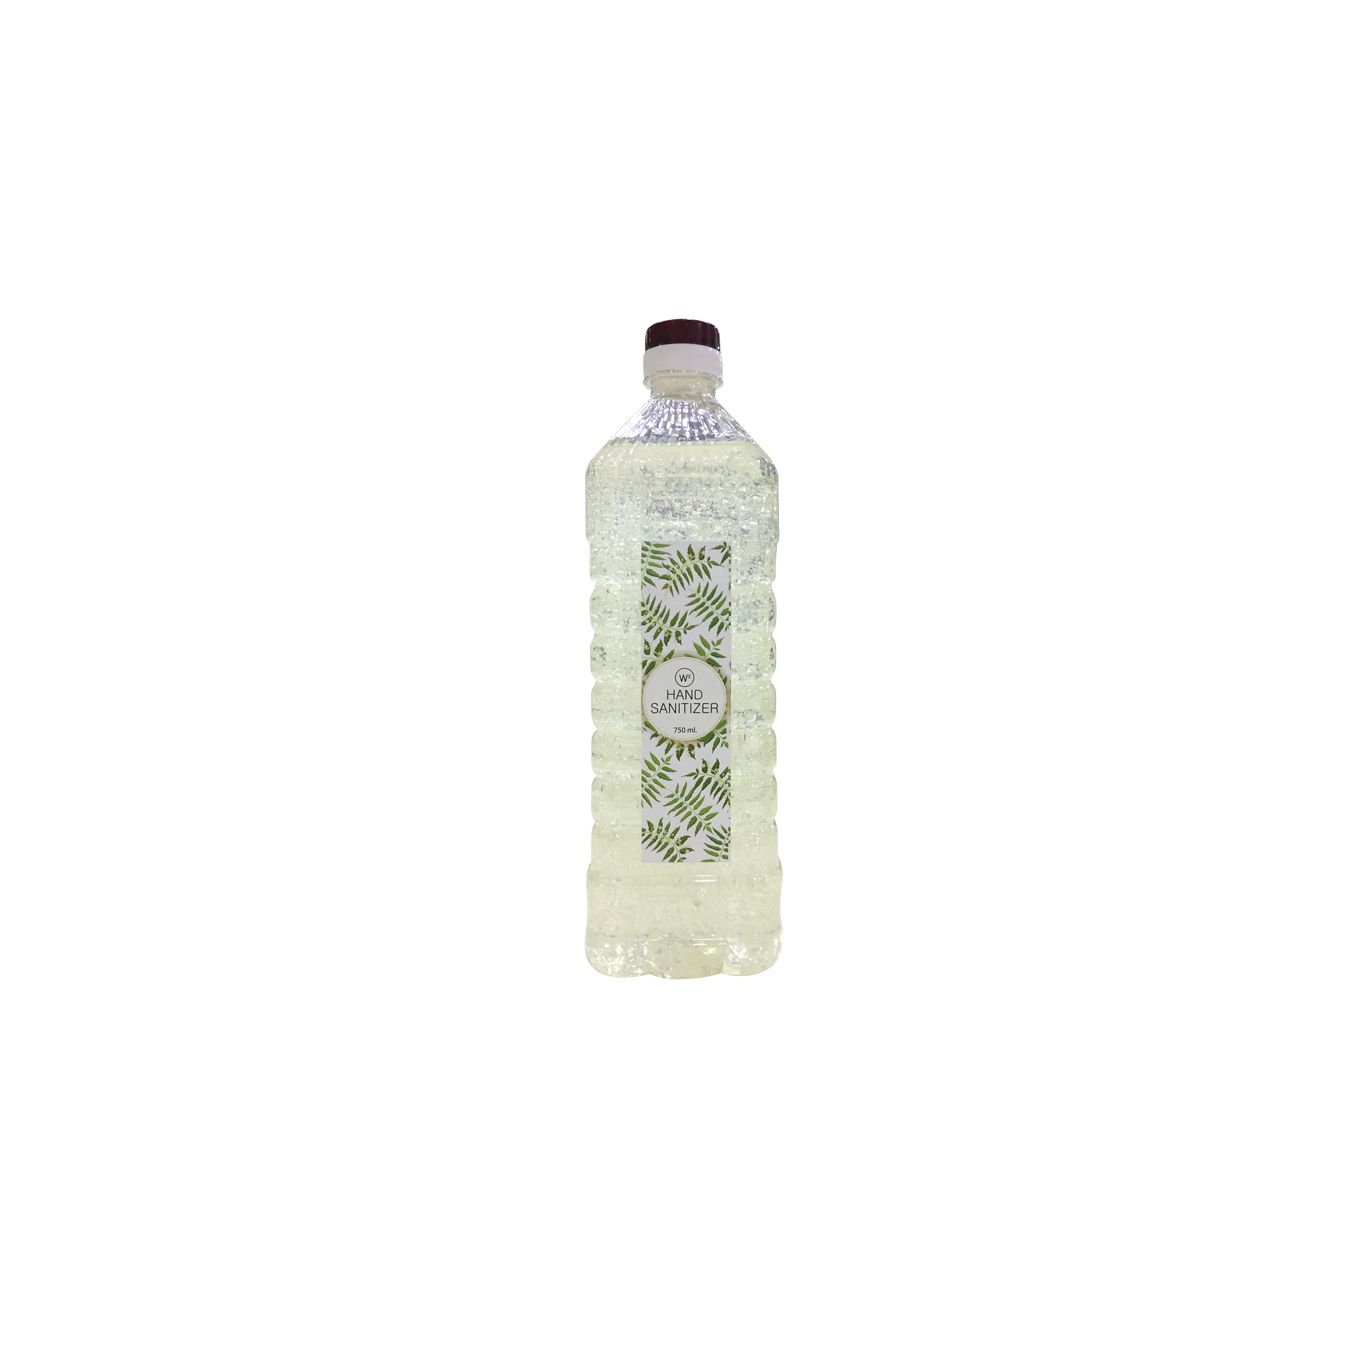 W2 Sanitizer 750 ml (Pack of 4)